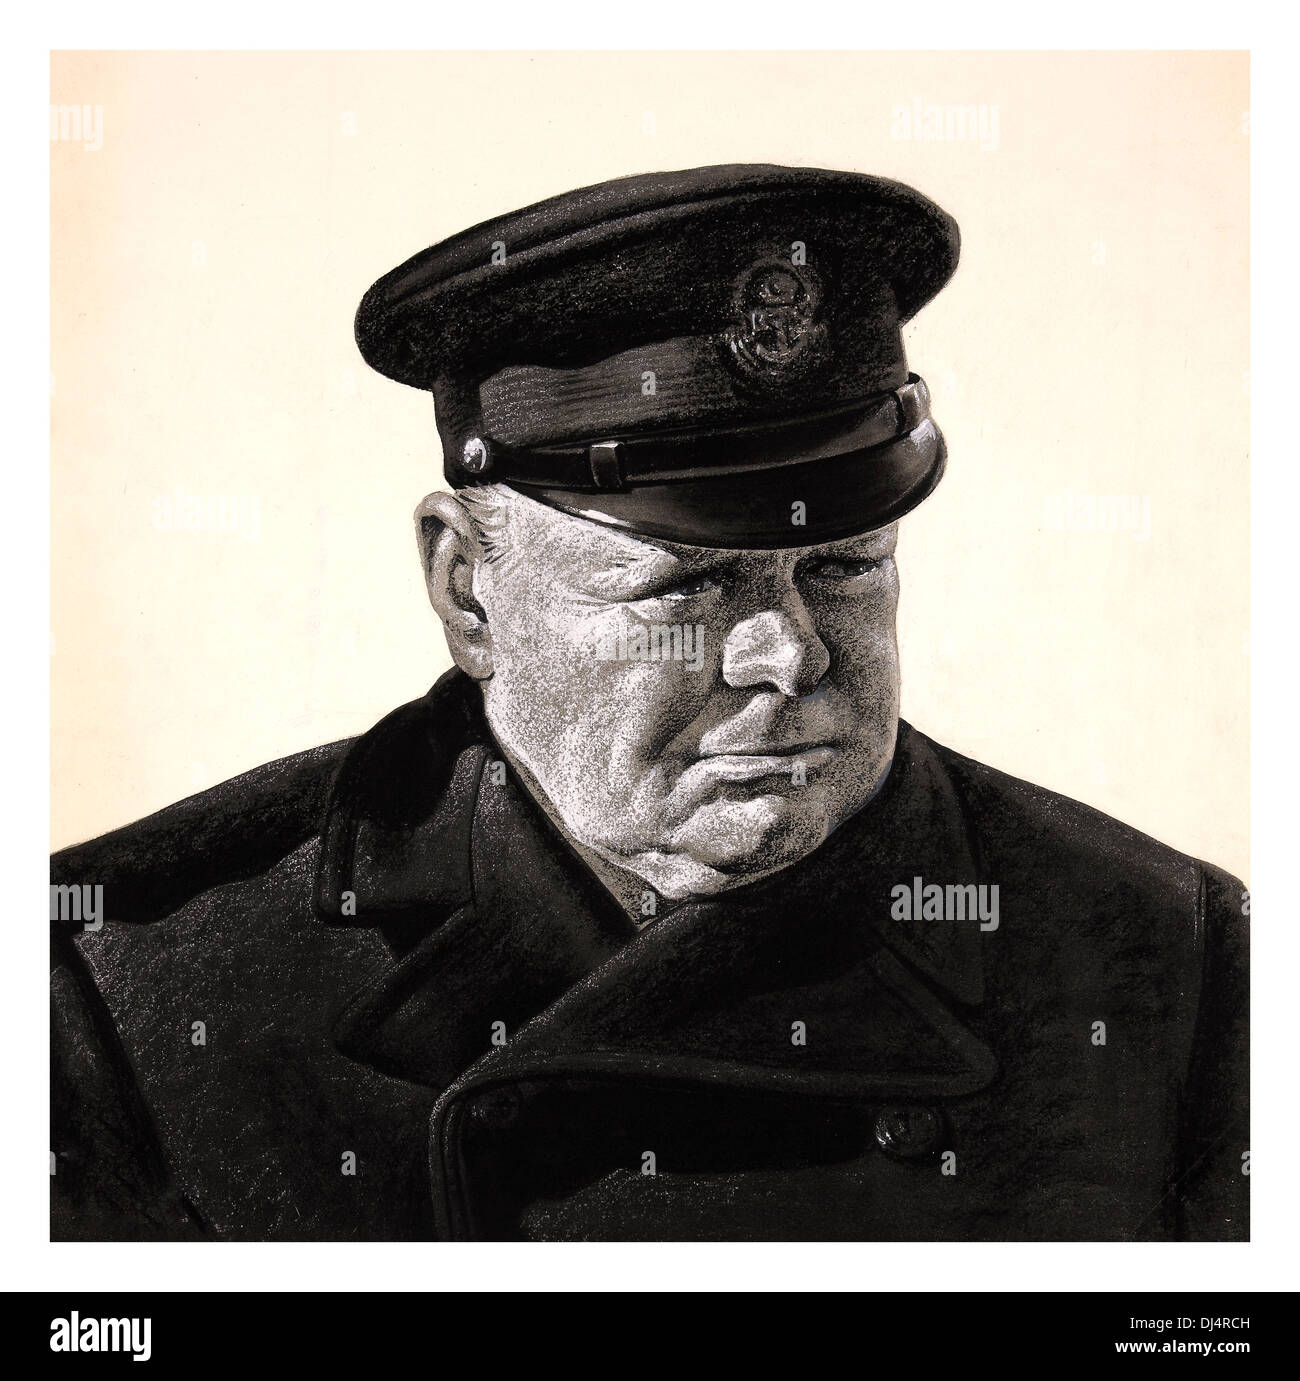 WW2  propaganda painting of presiding prime minister Winston Churchill in naval uniform, one of Great Britain's finest leaders - Stock Image